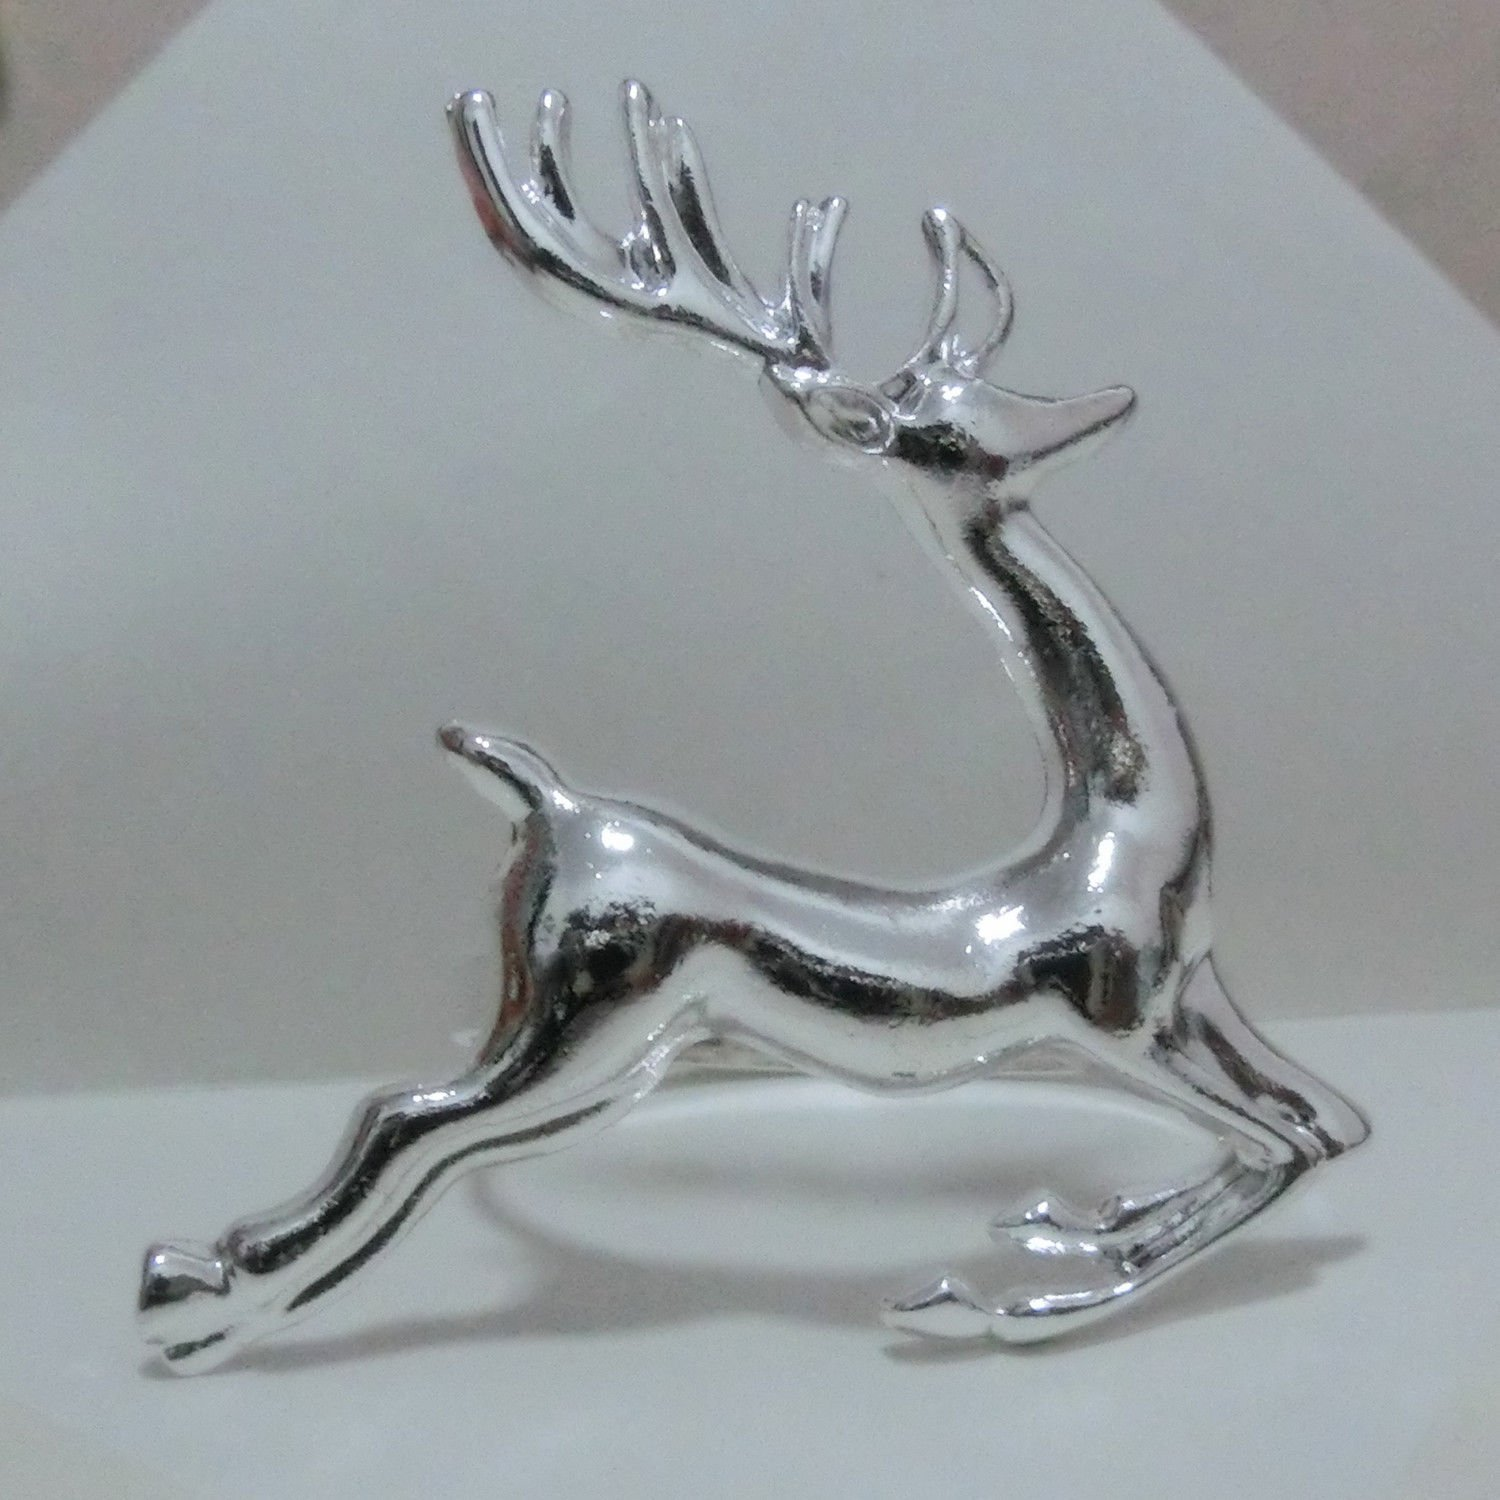 Elehere Silver Deer Napkin Ring Holders for Dinners Parties Everyday Home Table Decoration Accessory Adornment For Wedding SET OF 8